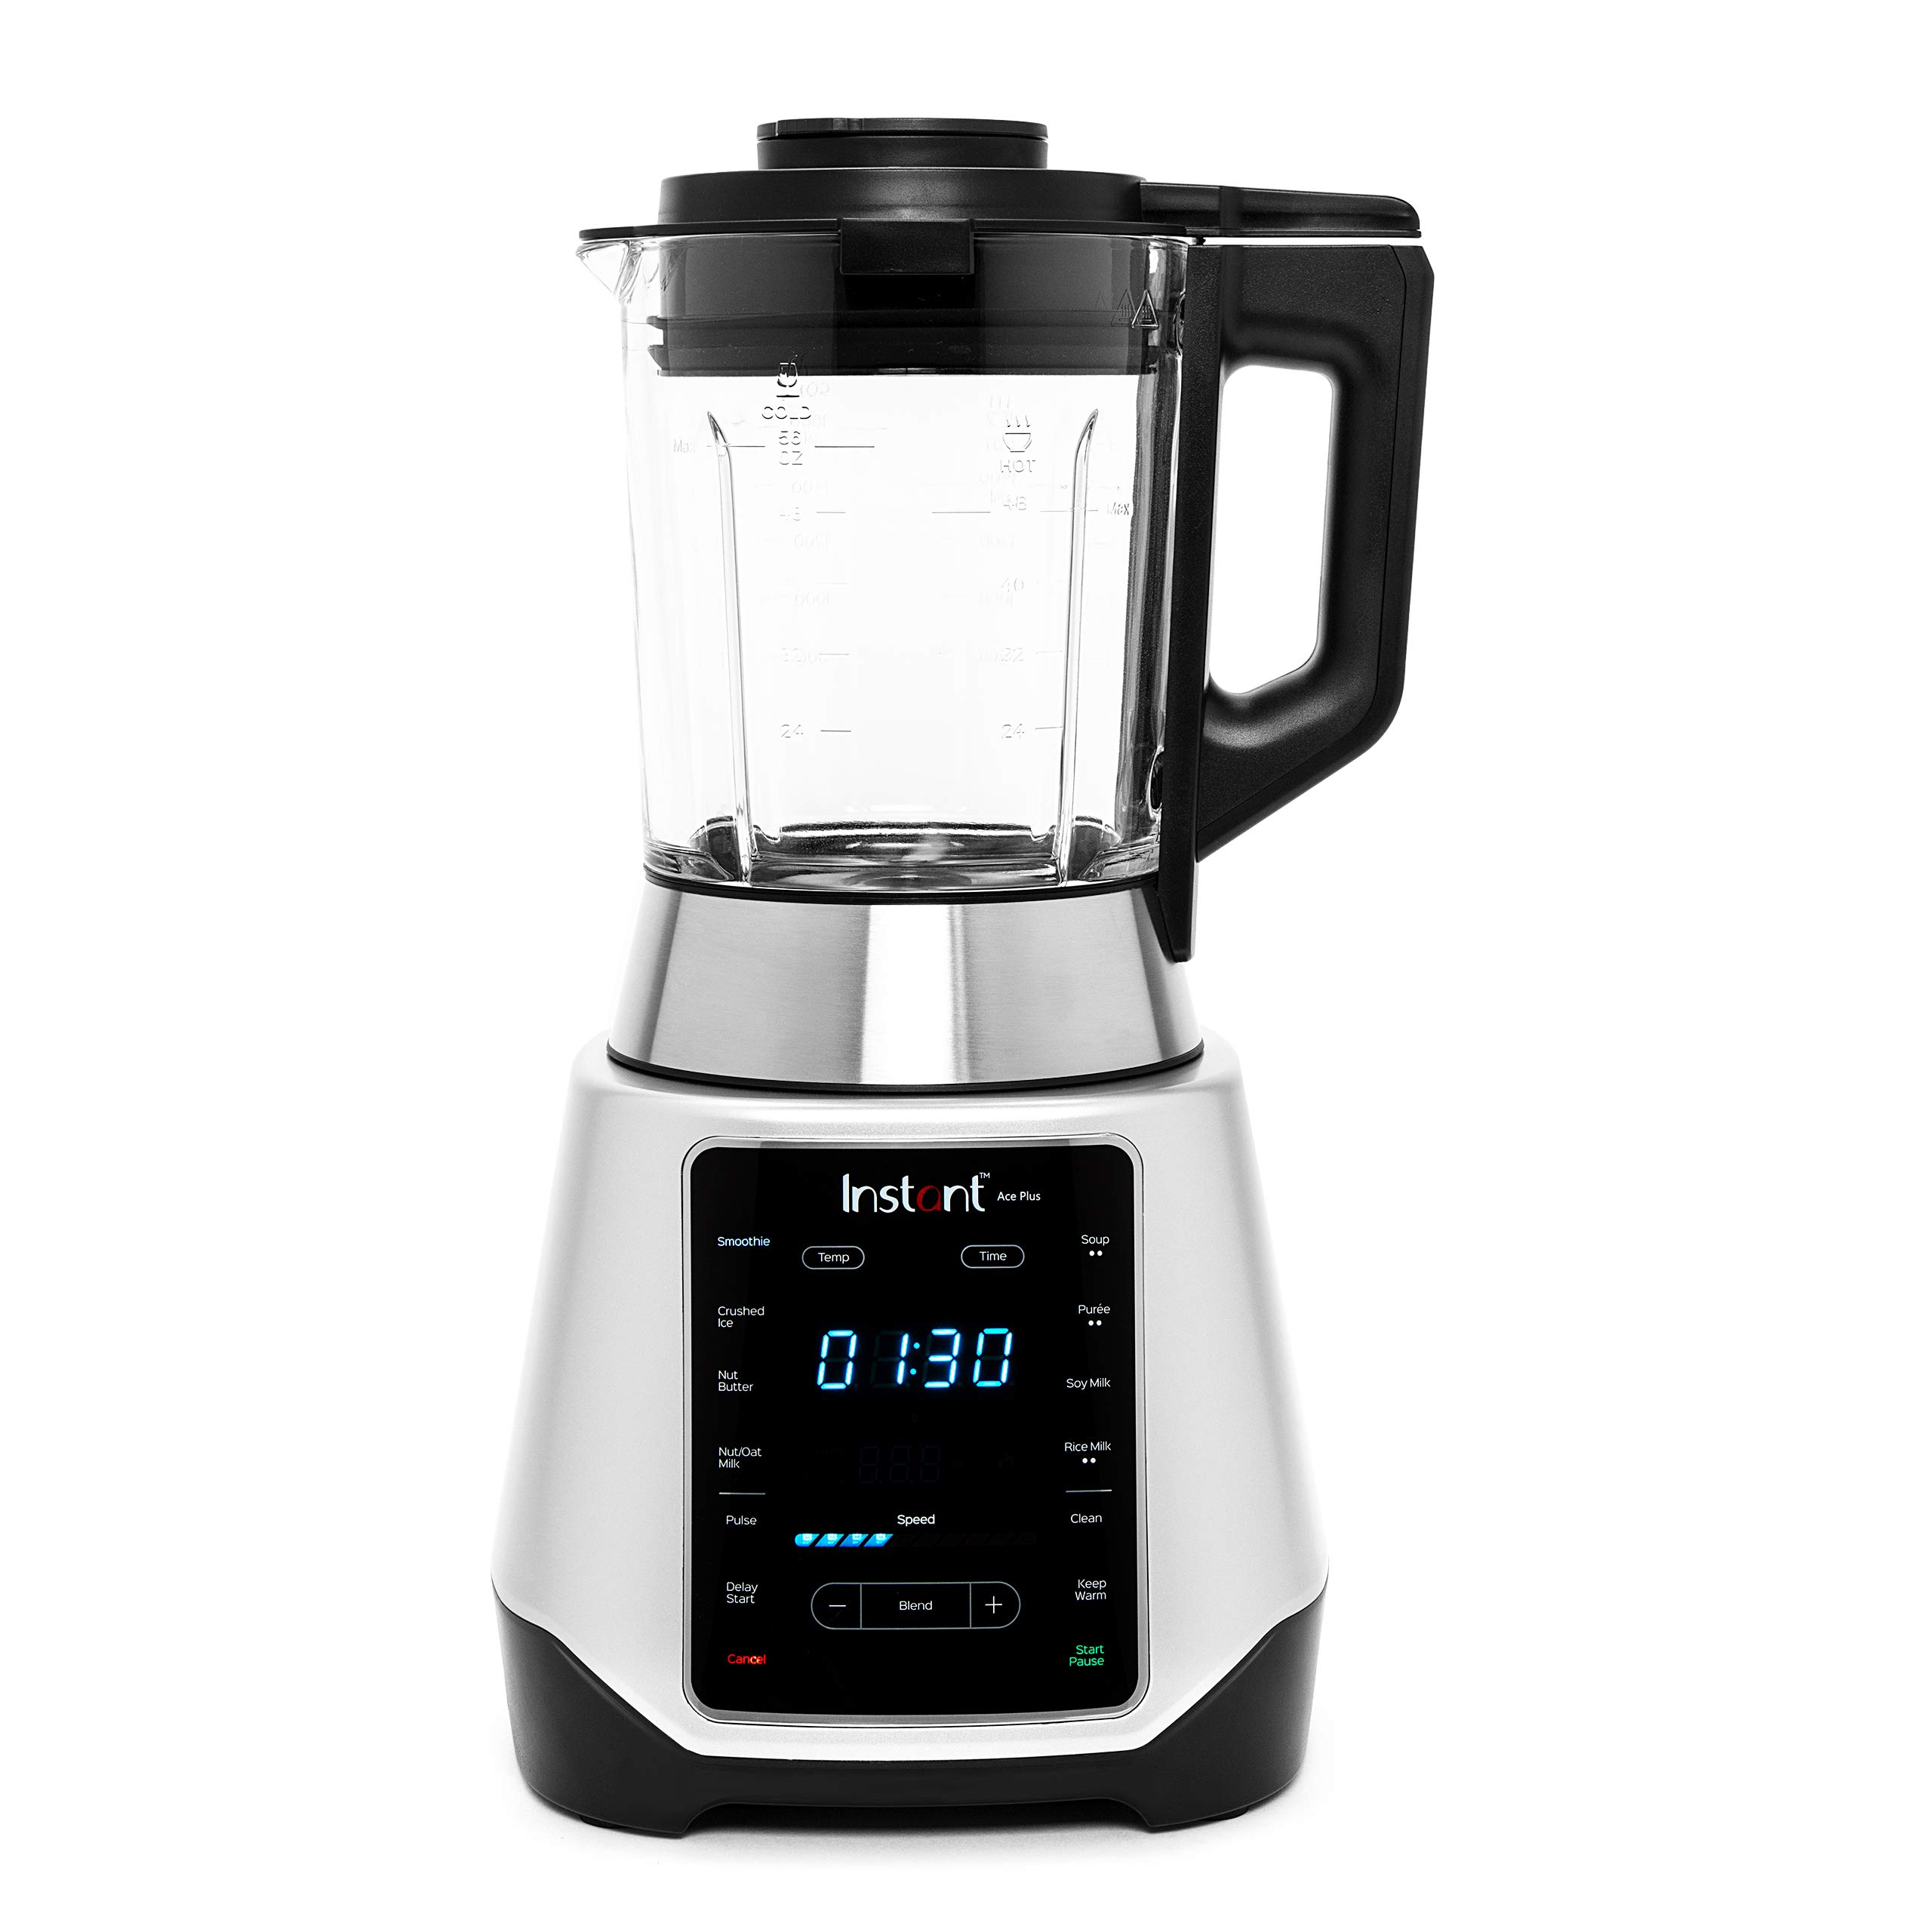 Instant Ace Plus Cooking & Beverage Blender Includes Professional Quality Glass Pitcher with Concealed Heating Element, 8 Stainless Steel Blades, 54 oz, 1300W, Silver & Black